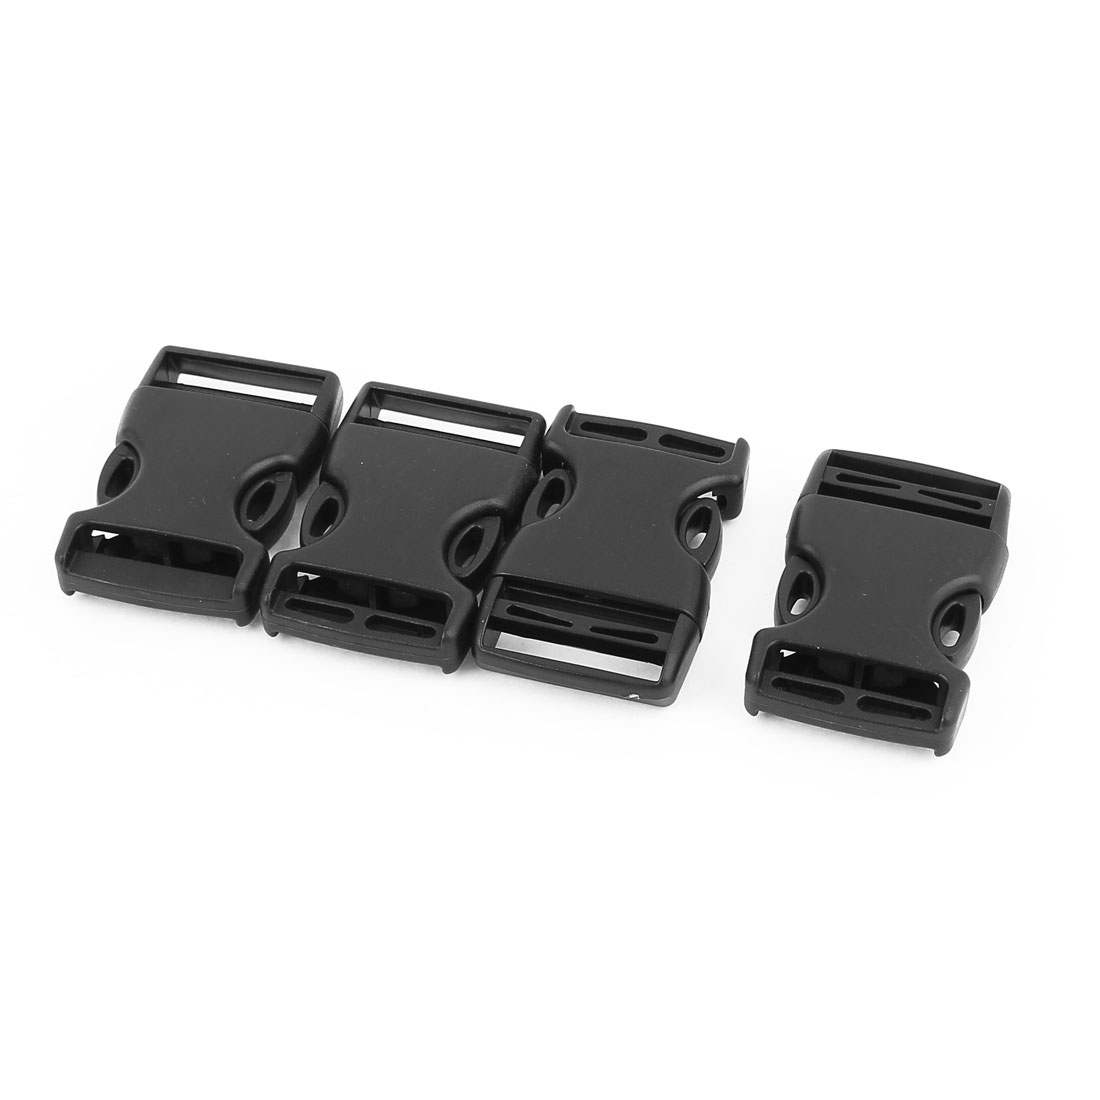 4pcs Black Plastic Curved Safety Side Quick Release Buckles Snap Clip for 25mm Webbing Band